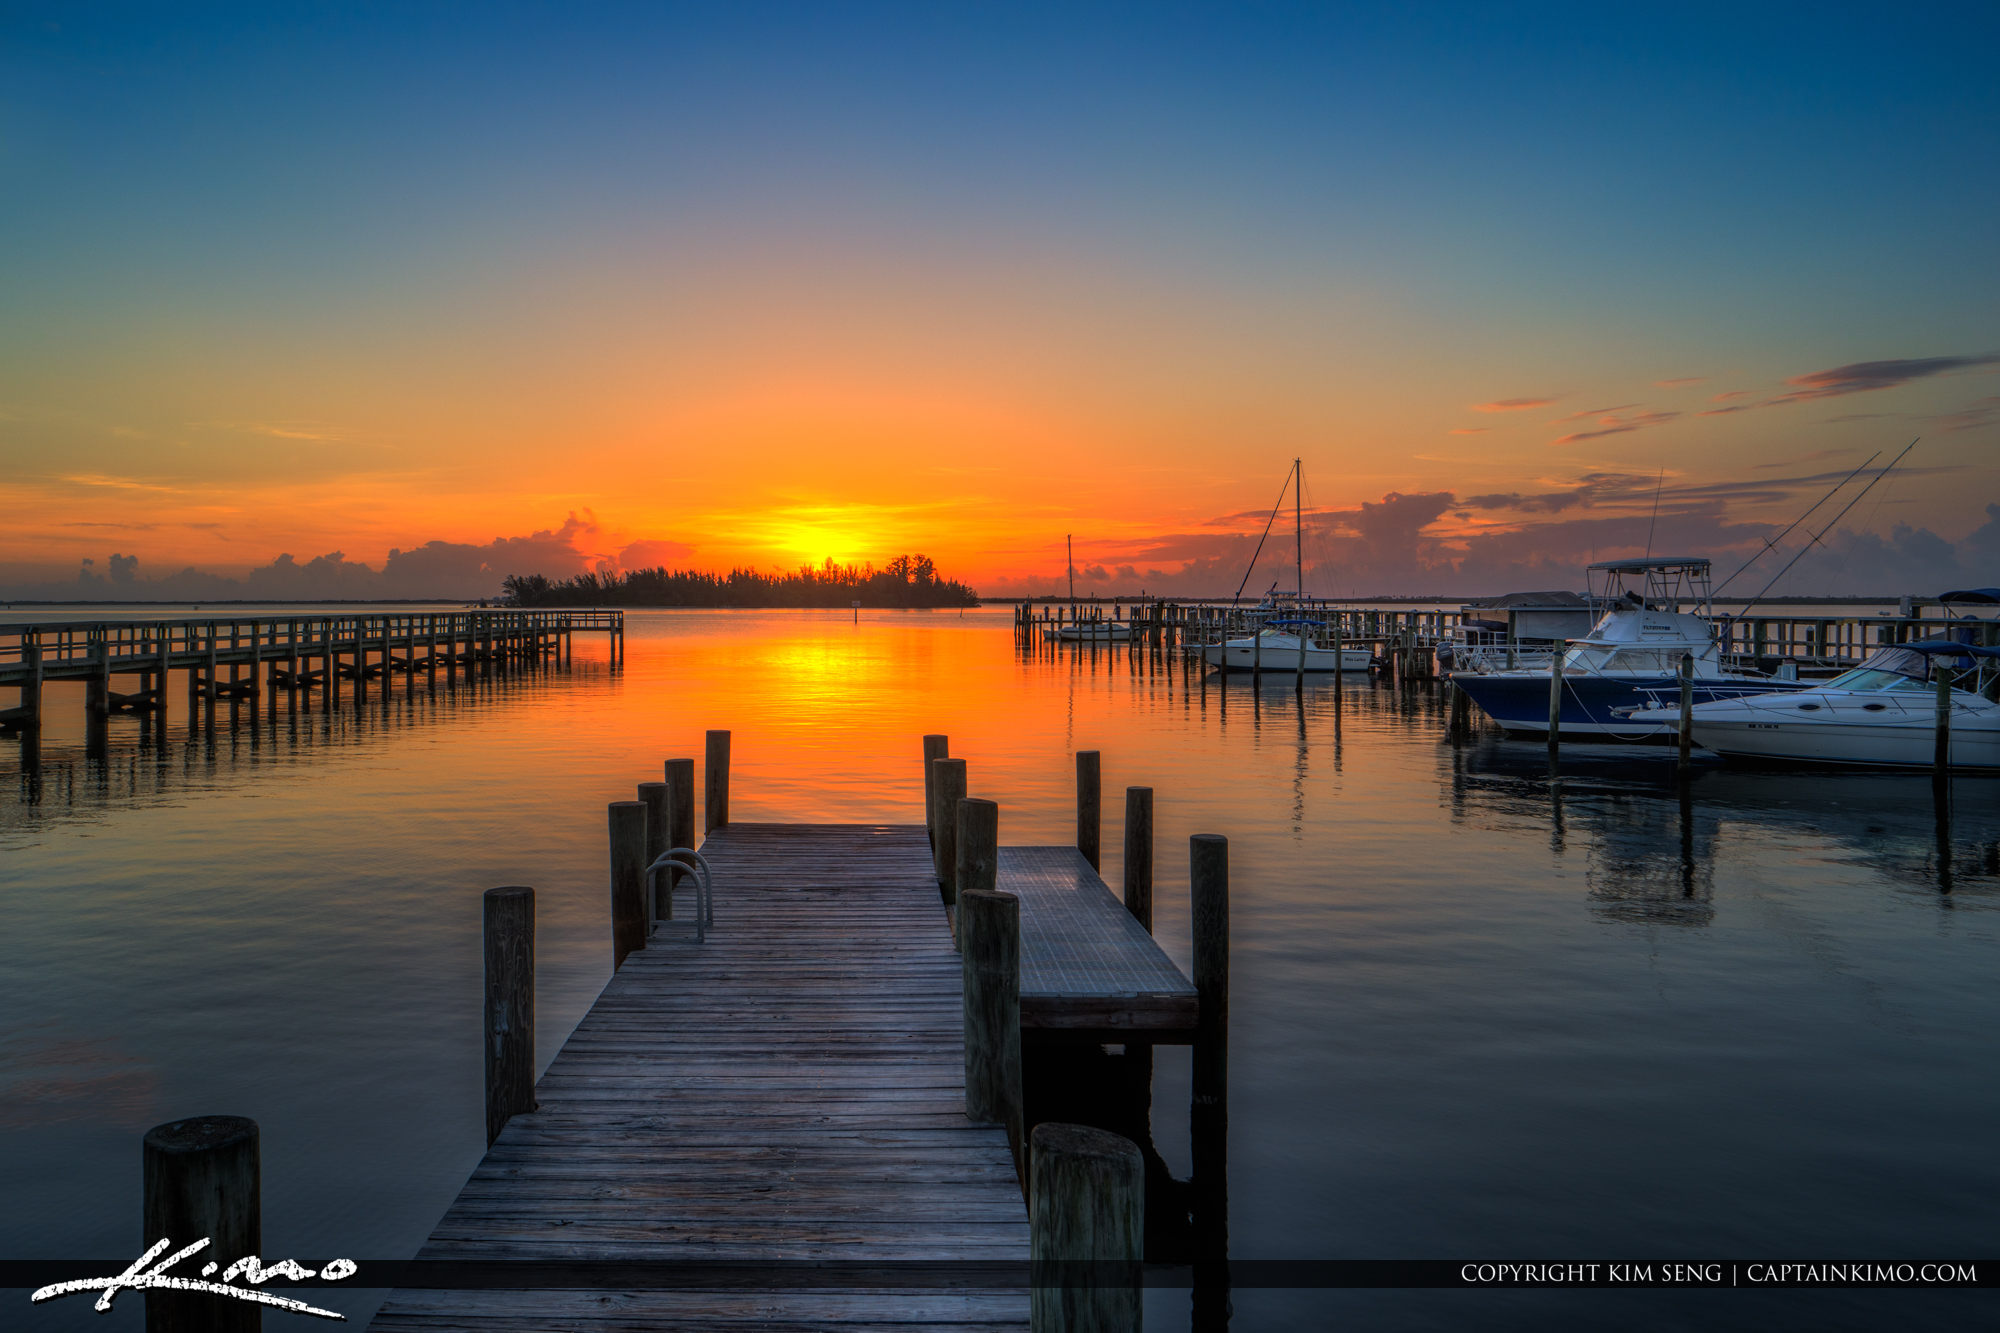 Sebastian Yacht Club Boat Ramp at Sunrise